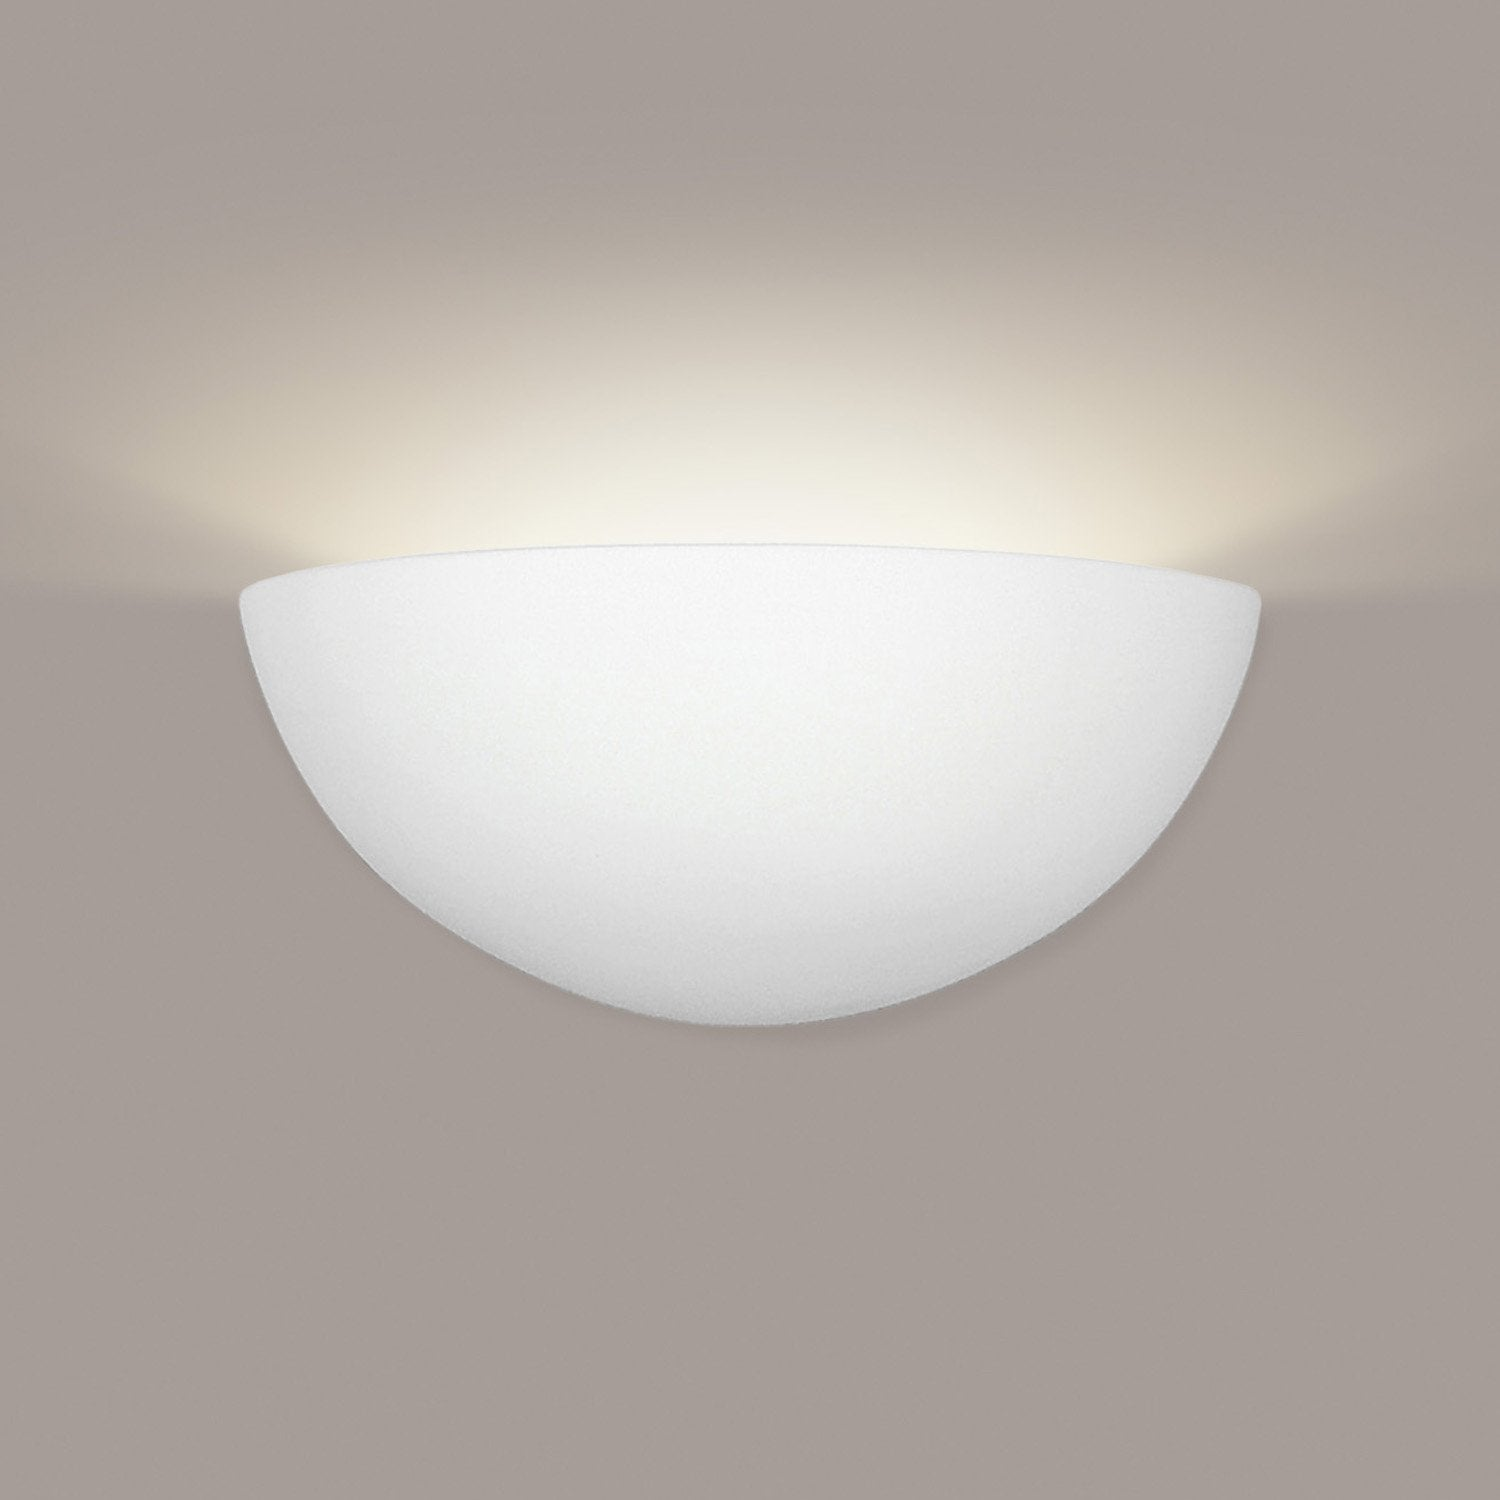 A19 302-MW Islands of Light Collection Thera Matte White Finish Wall Sconce